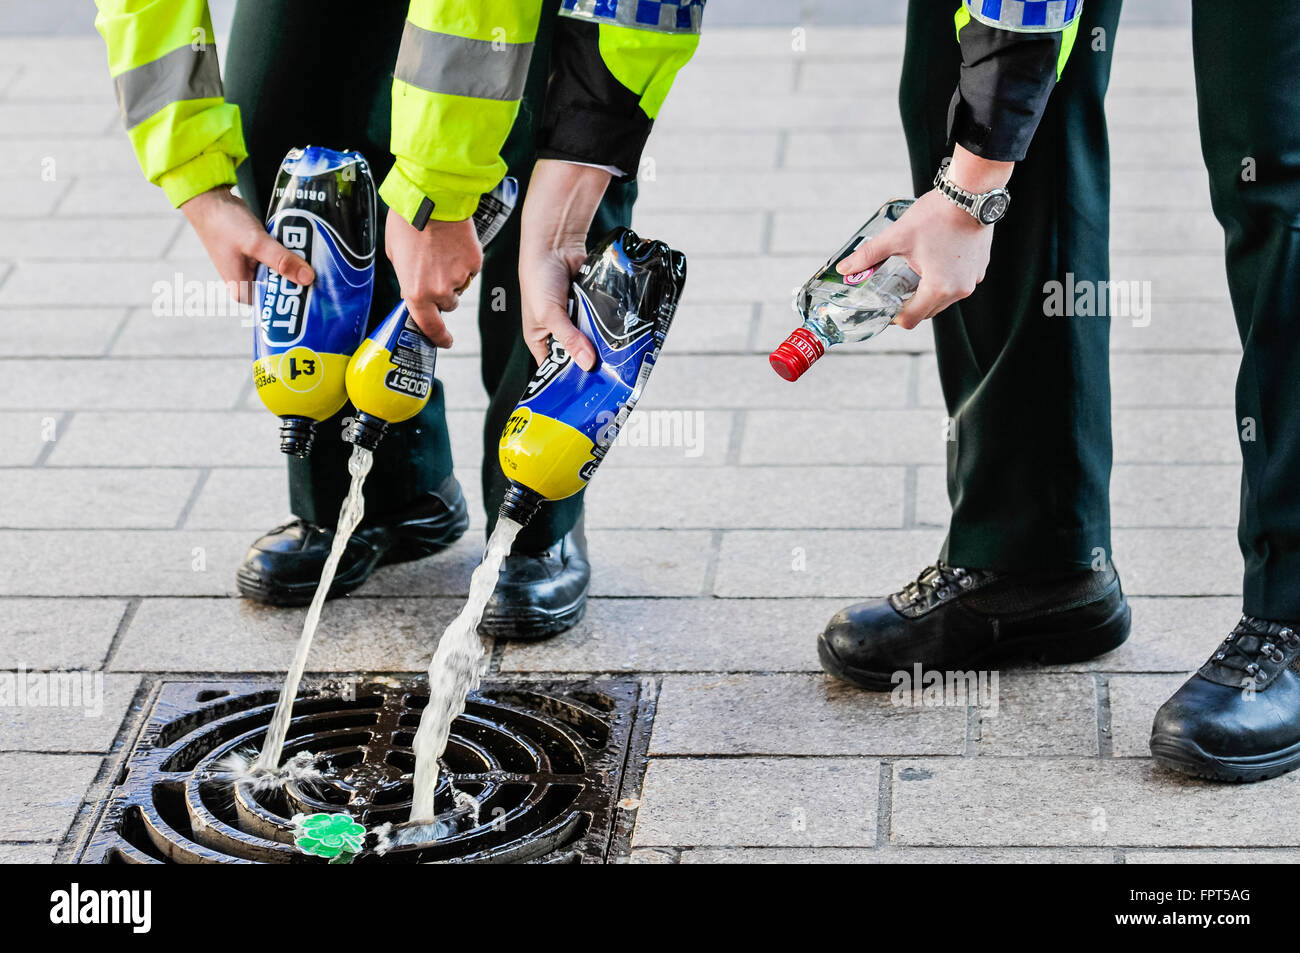 Belfast, Northern Ireland. 17 Mar 2016 - PSNI police officers dispose of alcohol confiscated from youths. Stock Photo